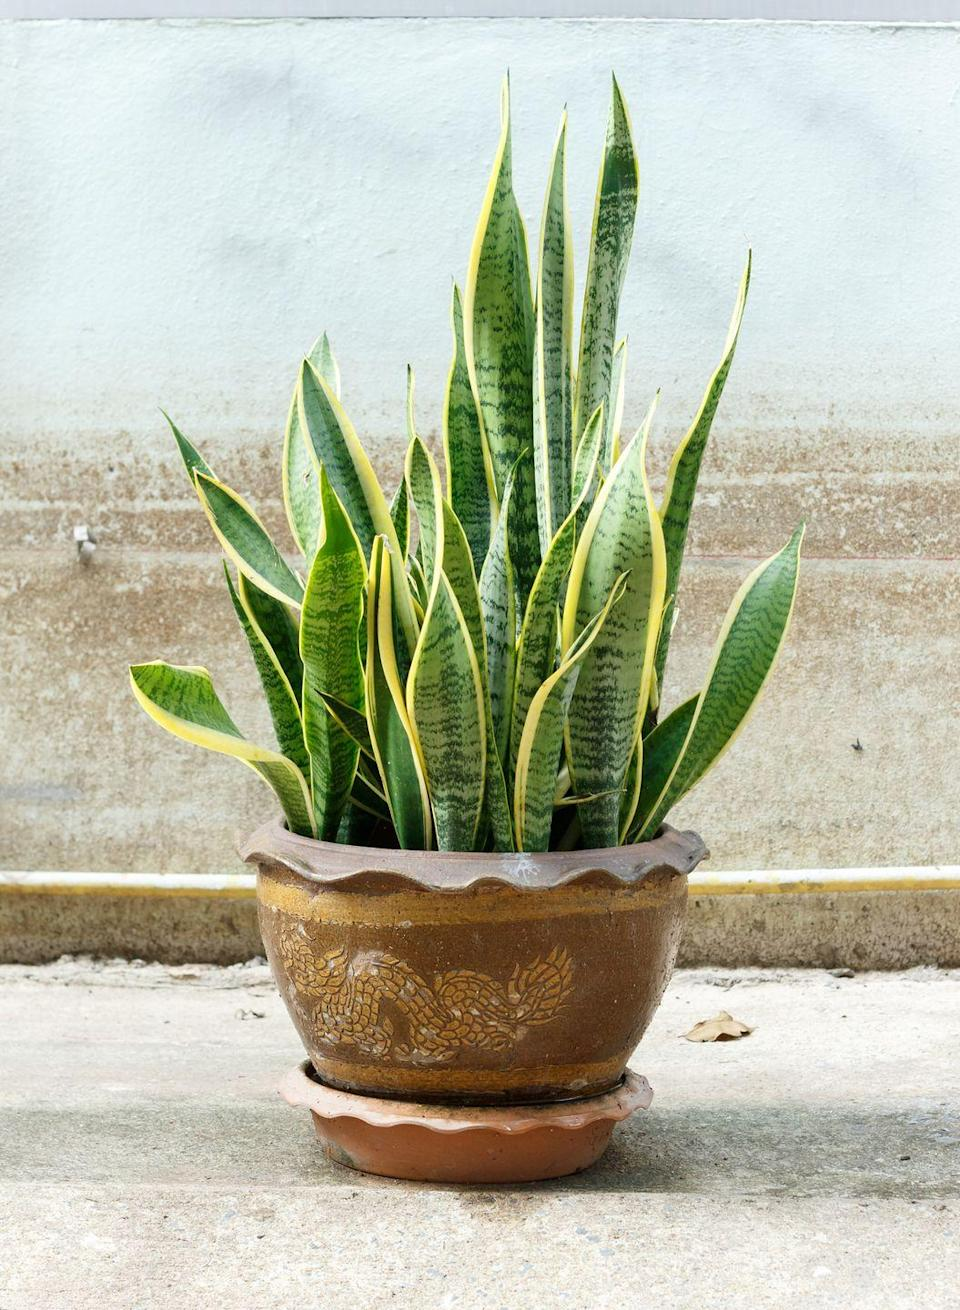 """<p>Though it also goes by the mildly offensive name """"mother-in-law's tongue,"""" we prefer to call the <em>Sansevieria Trifasciata</em> <em>L</em><em>aurentii </em>by its Slytherin-like name: snake plant. Even the blackest thumb can care for this hearty, air-cleaning plant.</p><p><a class=""""link rapid-noclick-resp"""" href=""""https://www.amazon.com/AMERICAN-PLANT-EXCHANGE-Sansevieria-Trifasciata/dp/B07J5PMBDB/?tag=syn-yahoo-20&ascsubtag=%5Bartid%7C2141.g.28325586%5Bsrc%7Cyahoo-us"""" rel=""""nofollow noopener"""" target=""""_blank"""" data-ylk=""""slk:SHOP SNAKE PLANTS"""">SHOP SNAKE PLANTS</a></p>"""